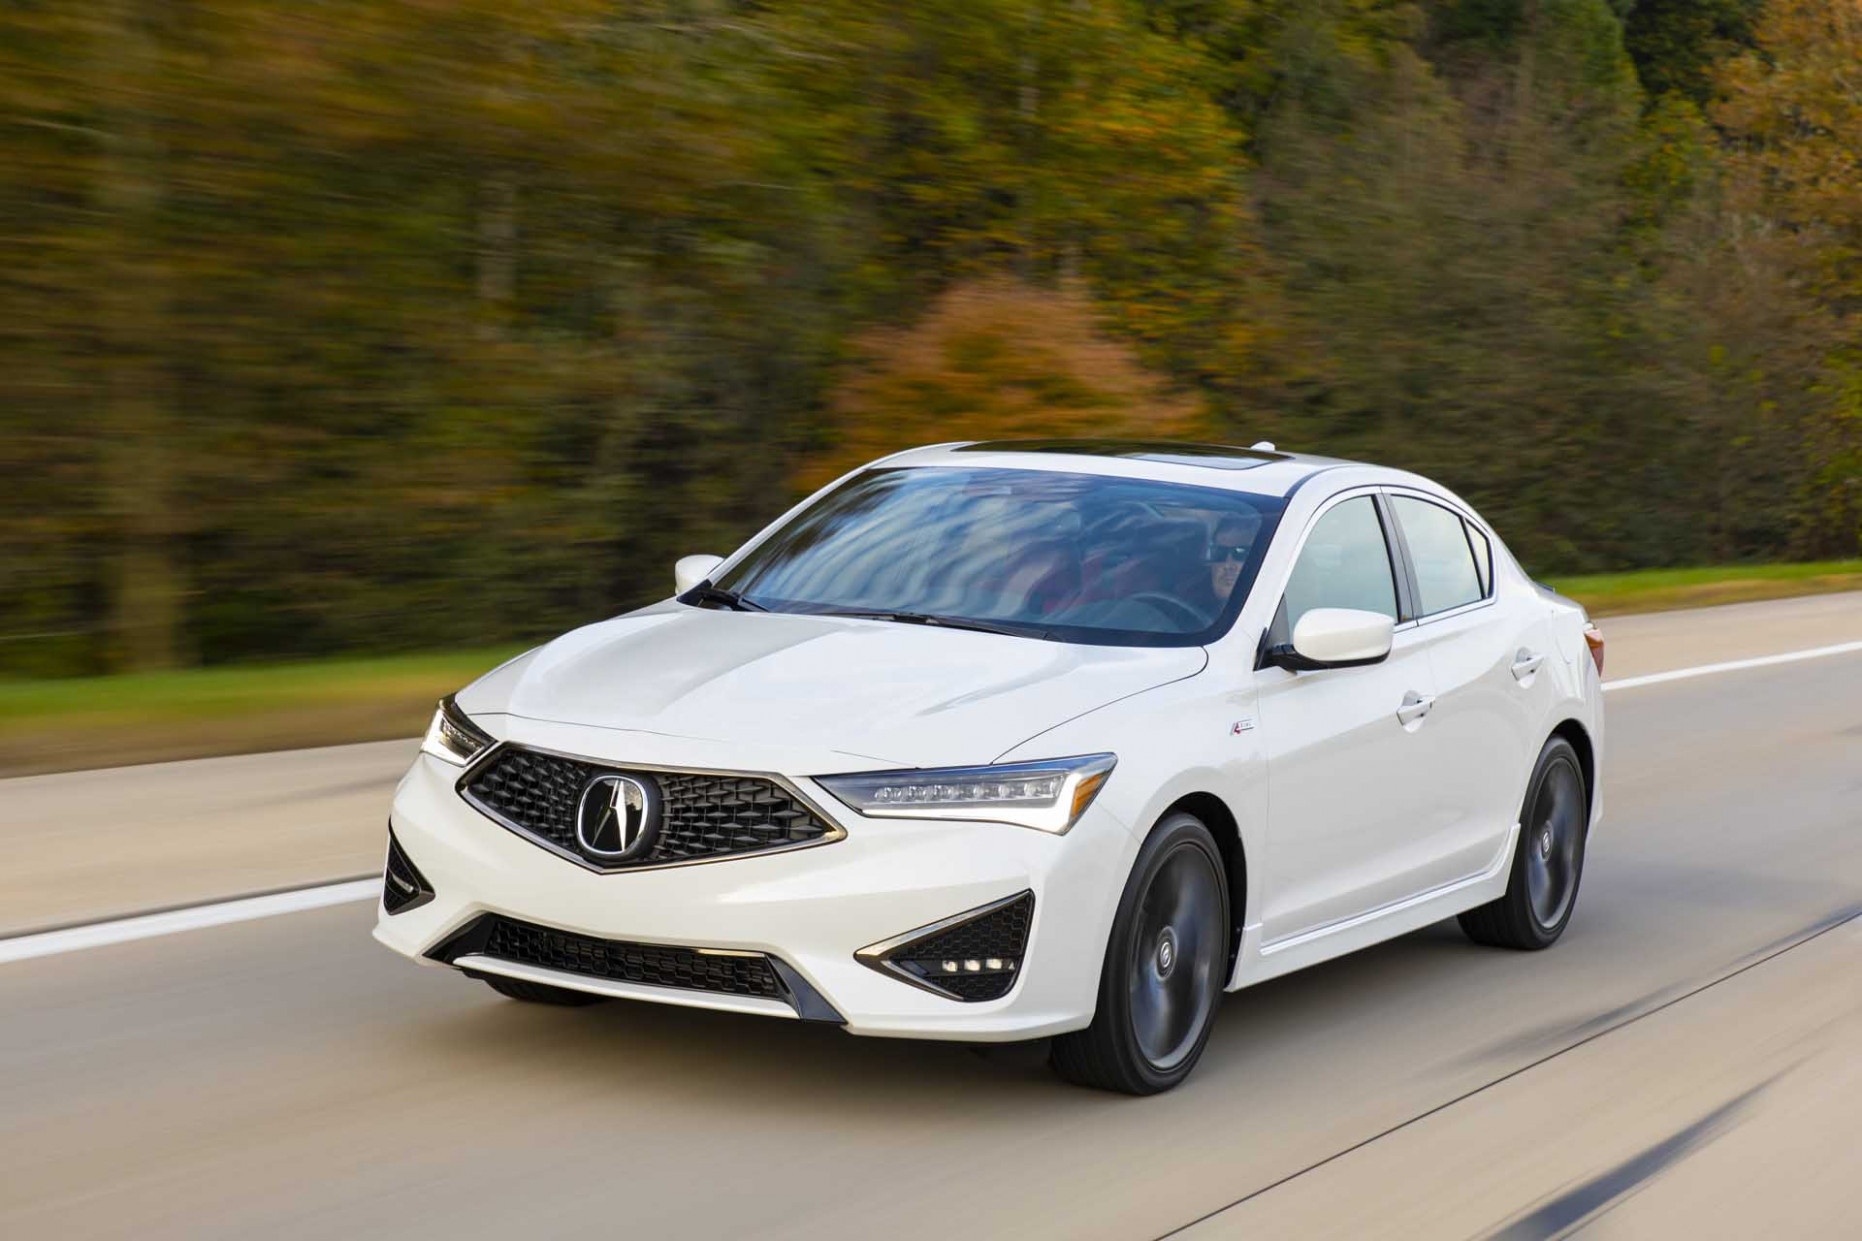 7 Acura ILX Review, Ratings, Specs, Prices, and Photos - The ...